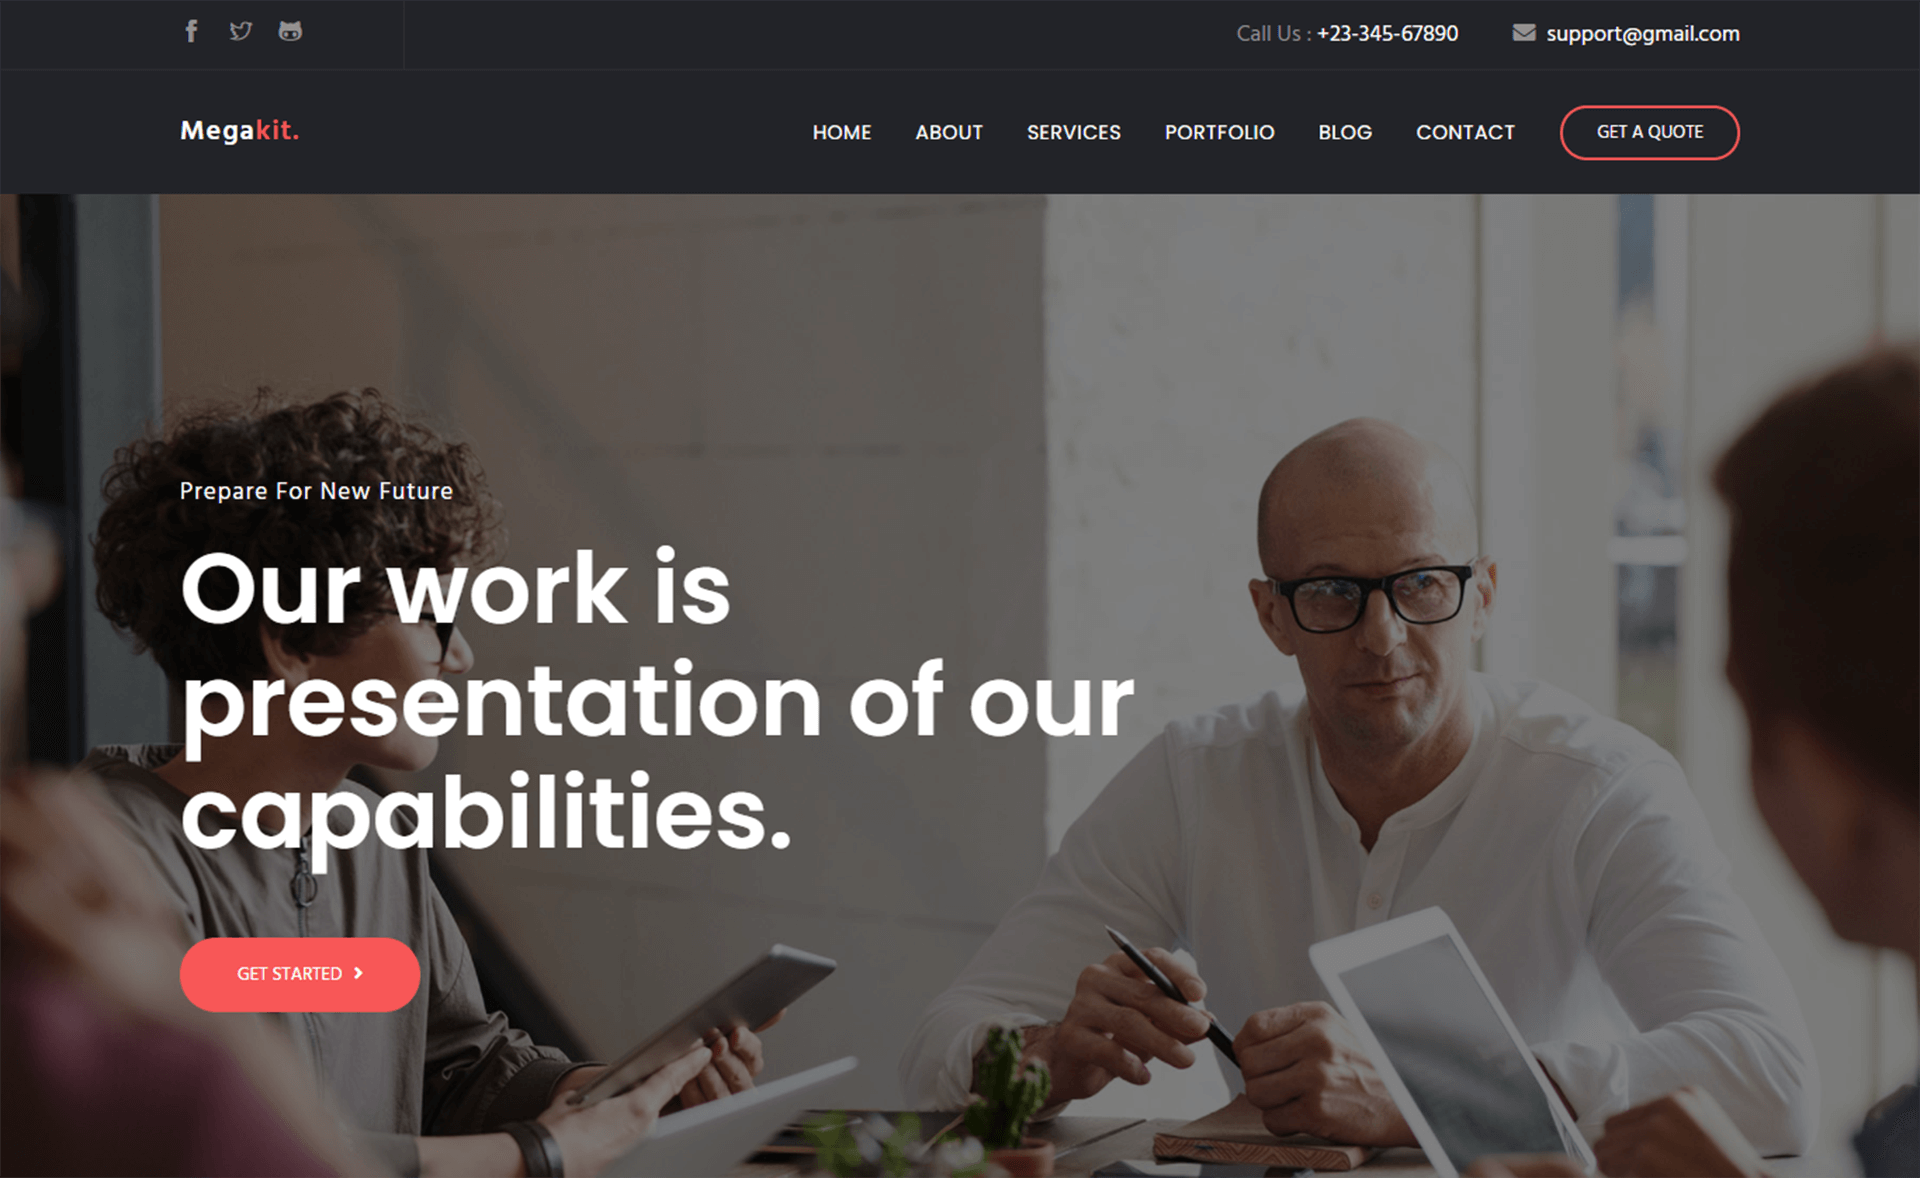 Free Bootstrap 4 HTML5 Business & Corporate Website Template